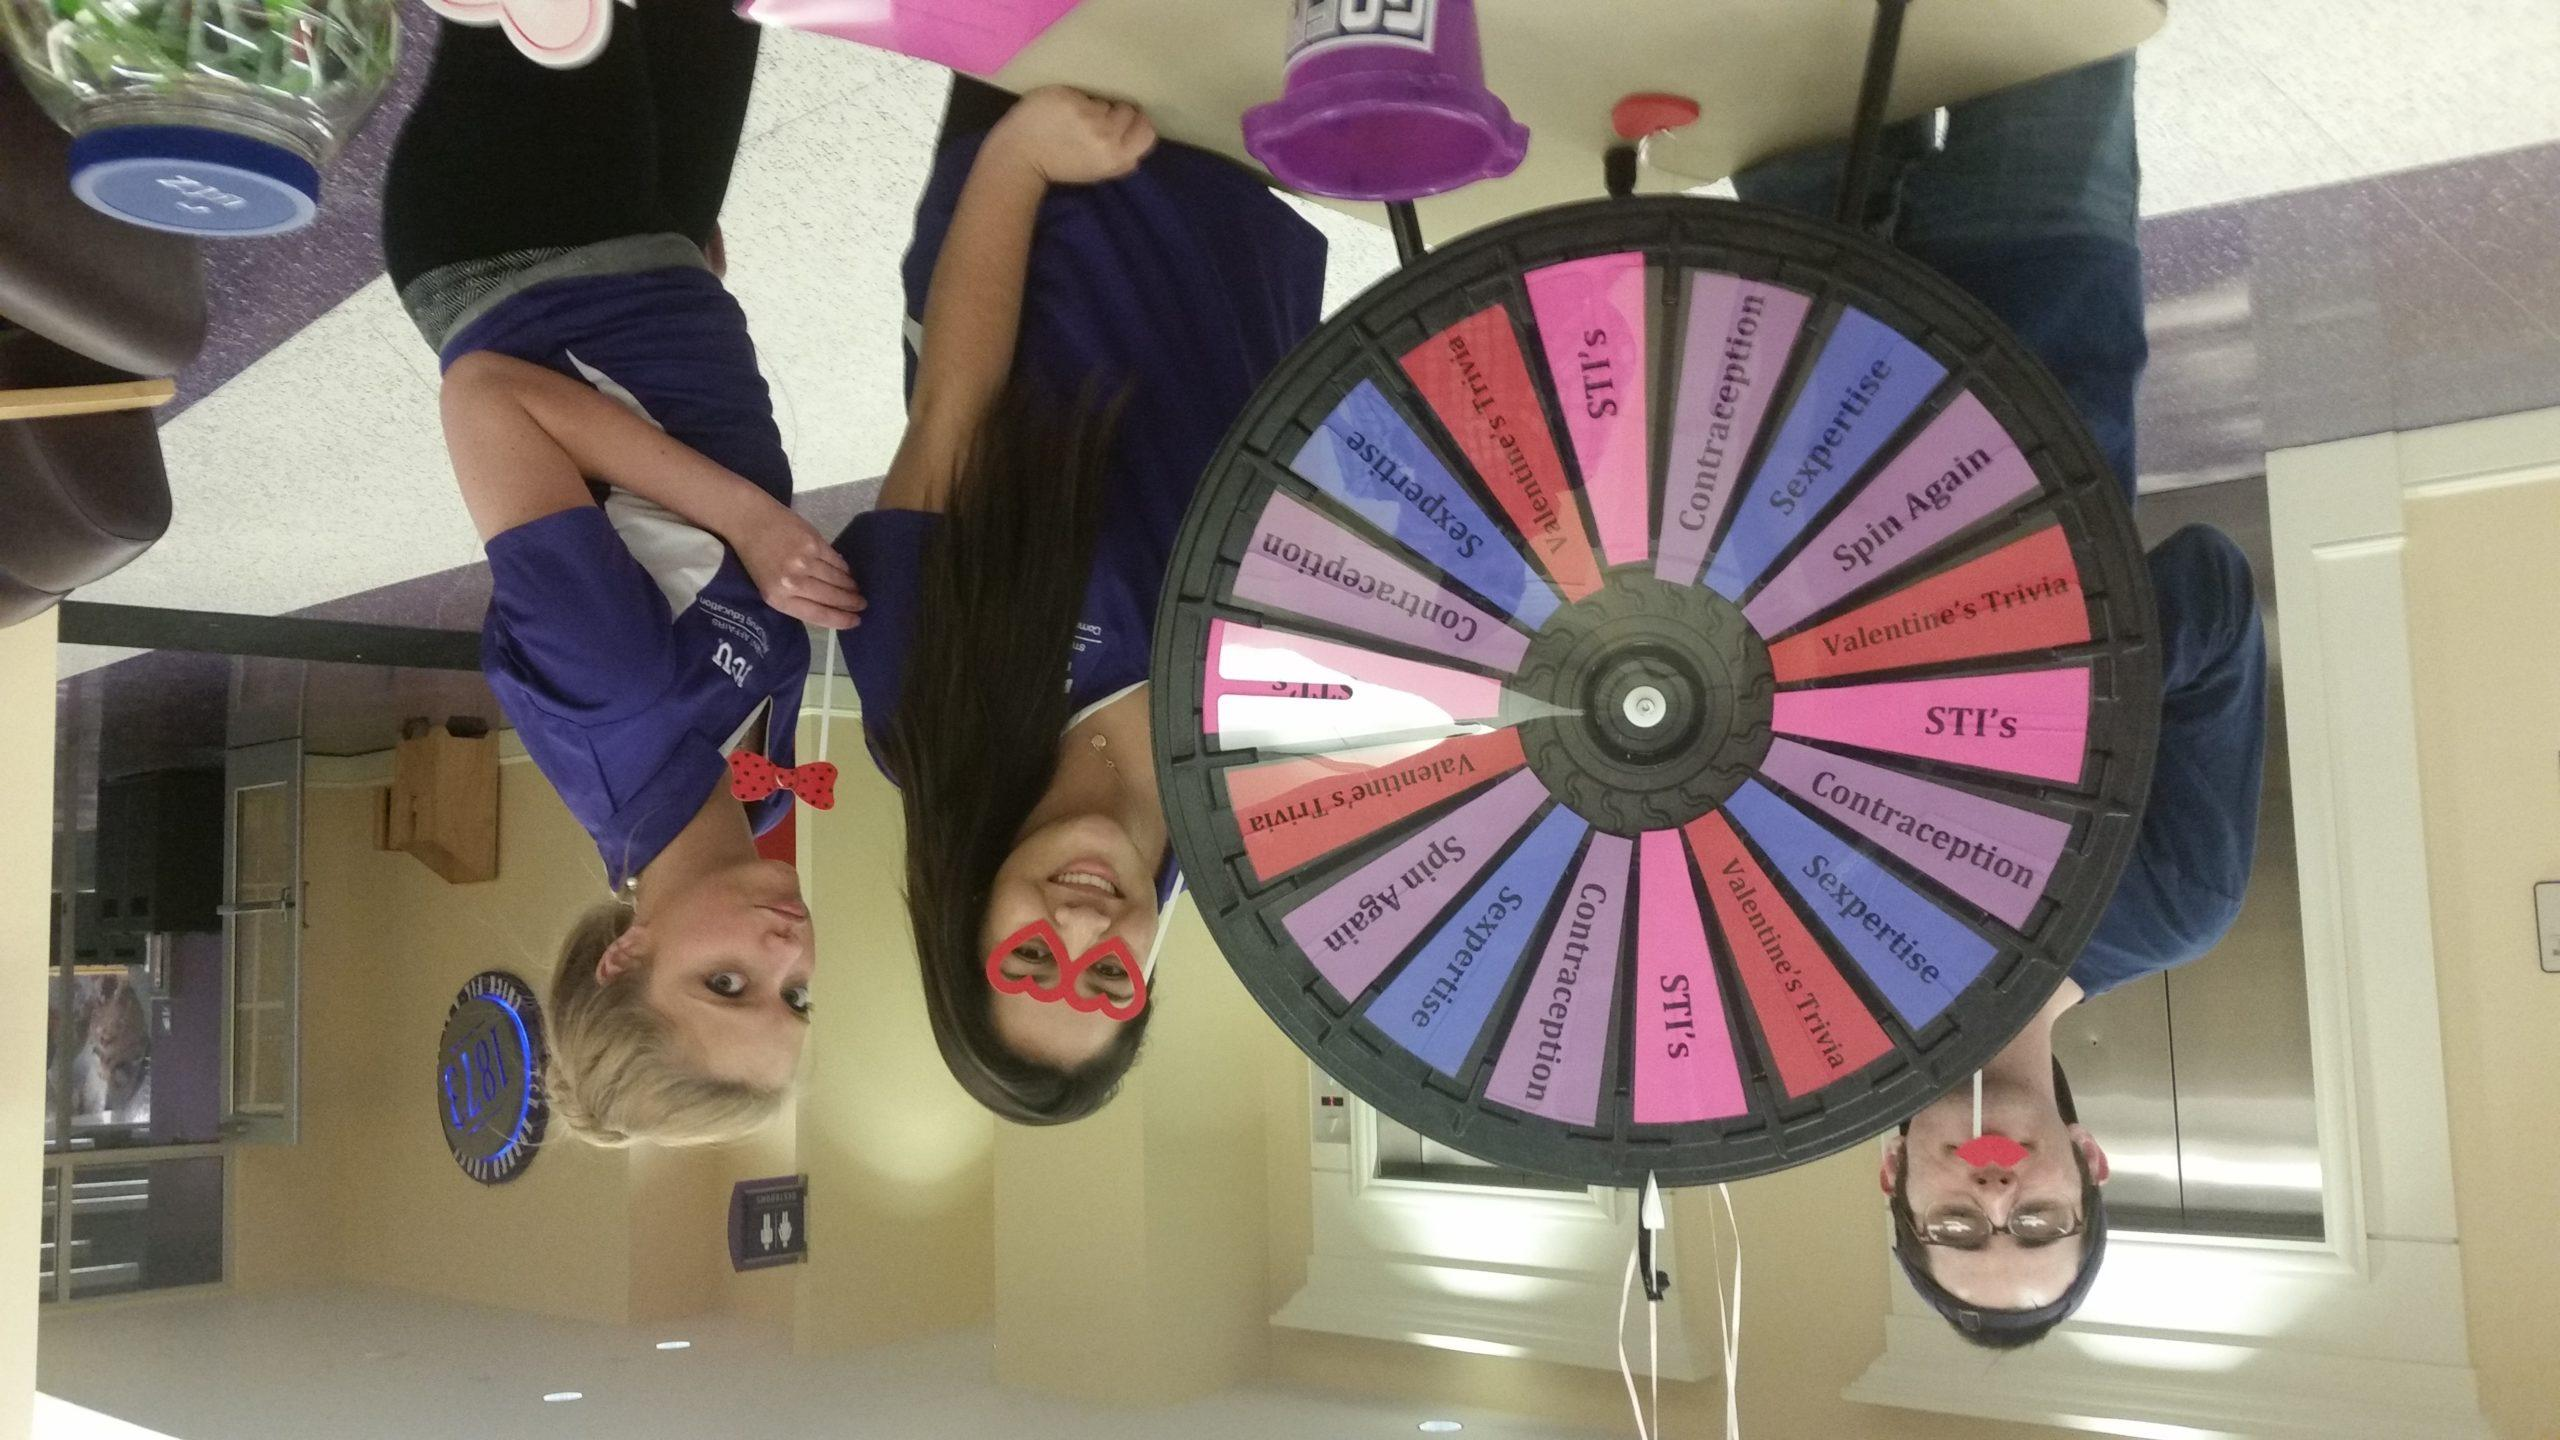 Three student volunteers helping with Sexual awareness event.